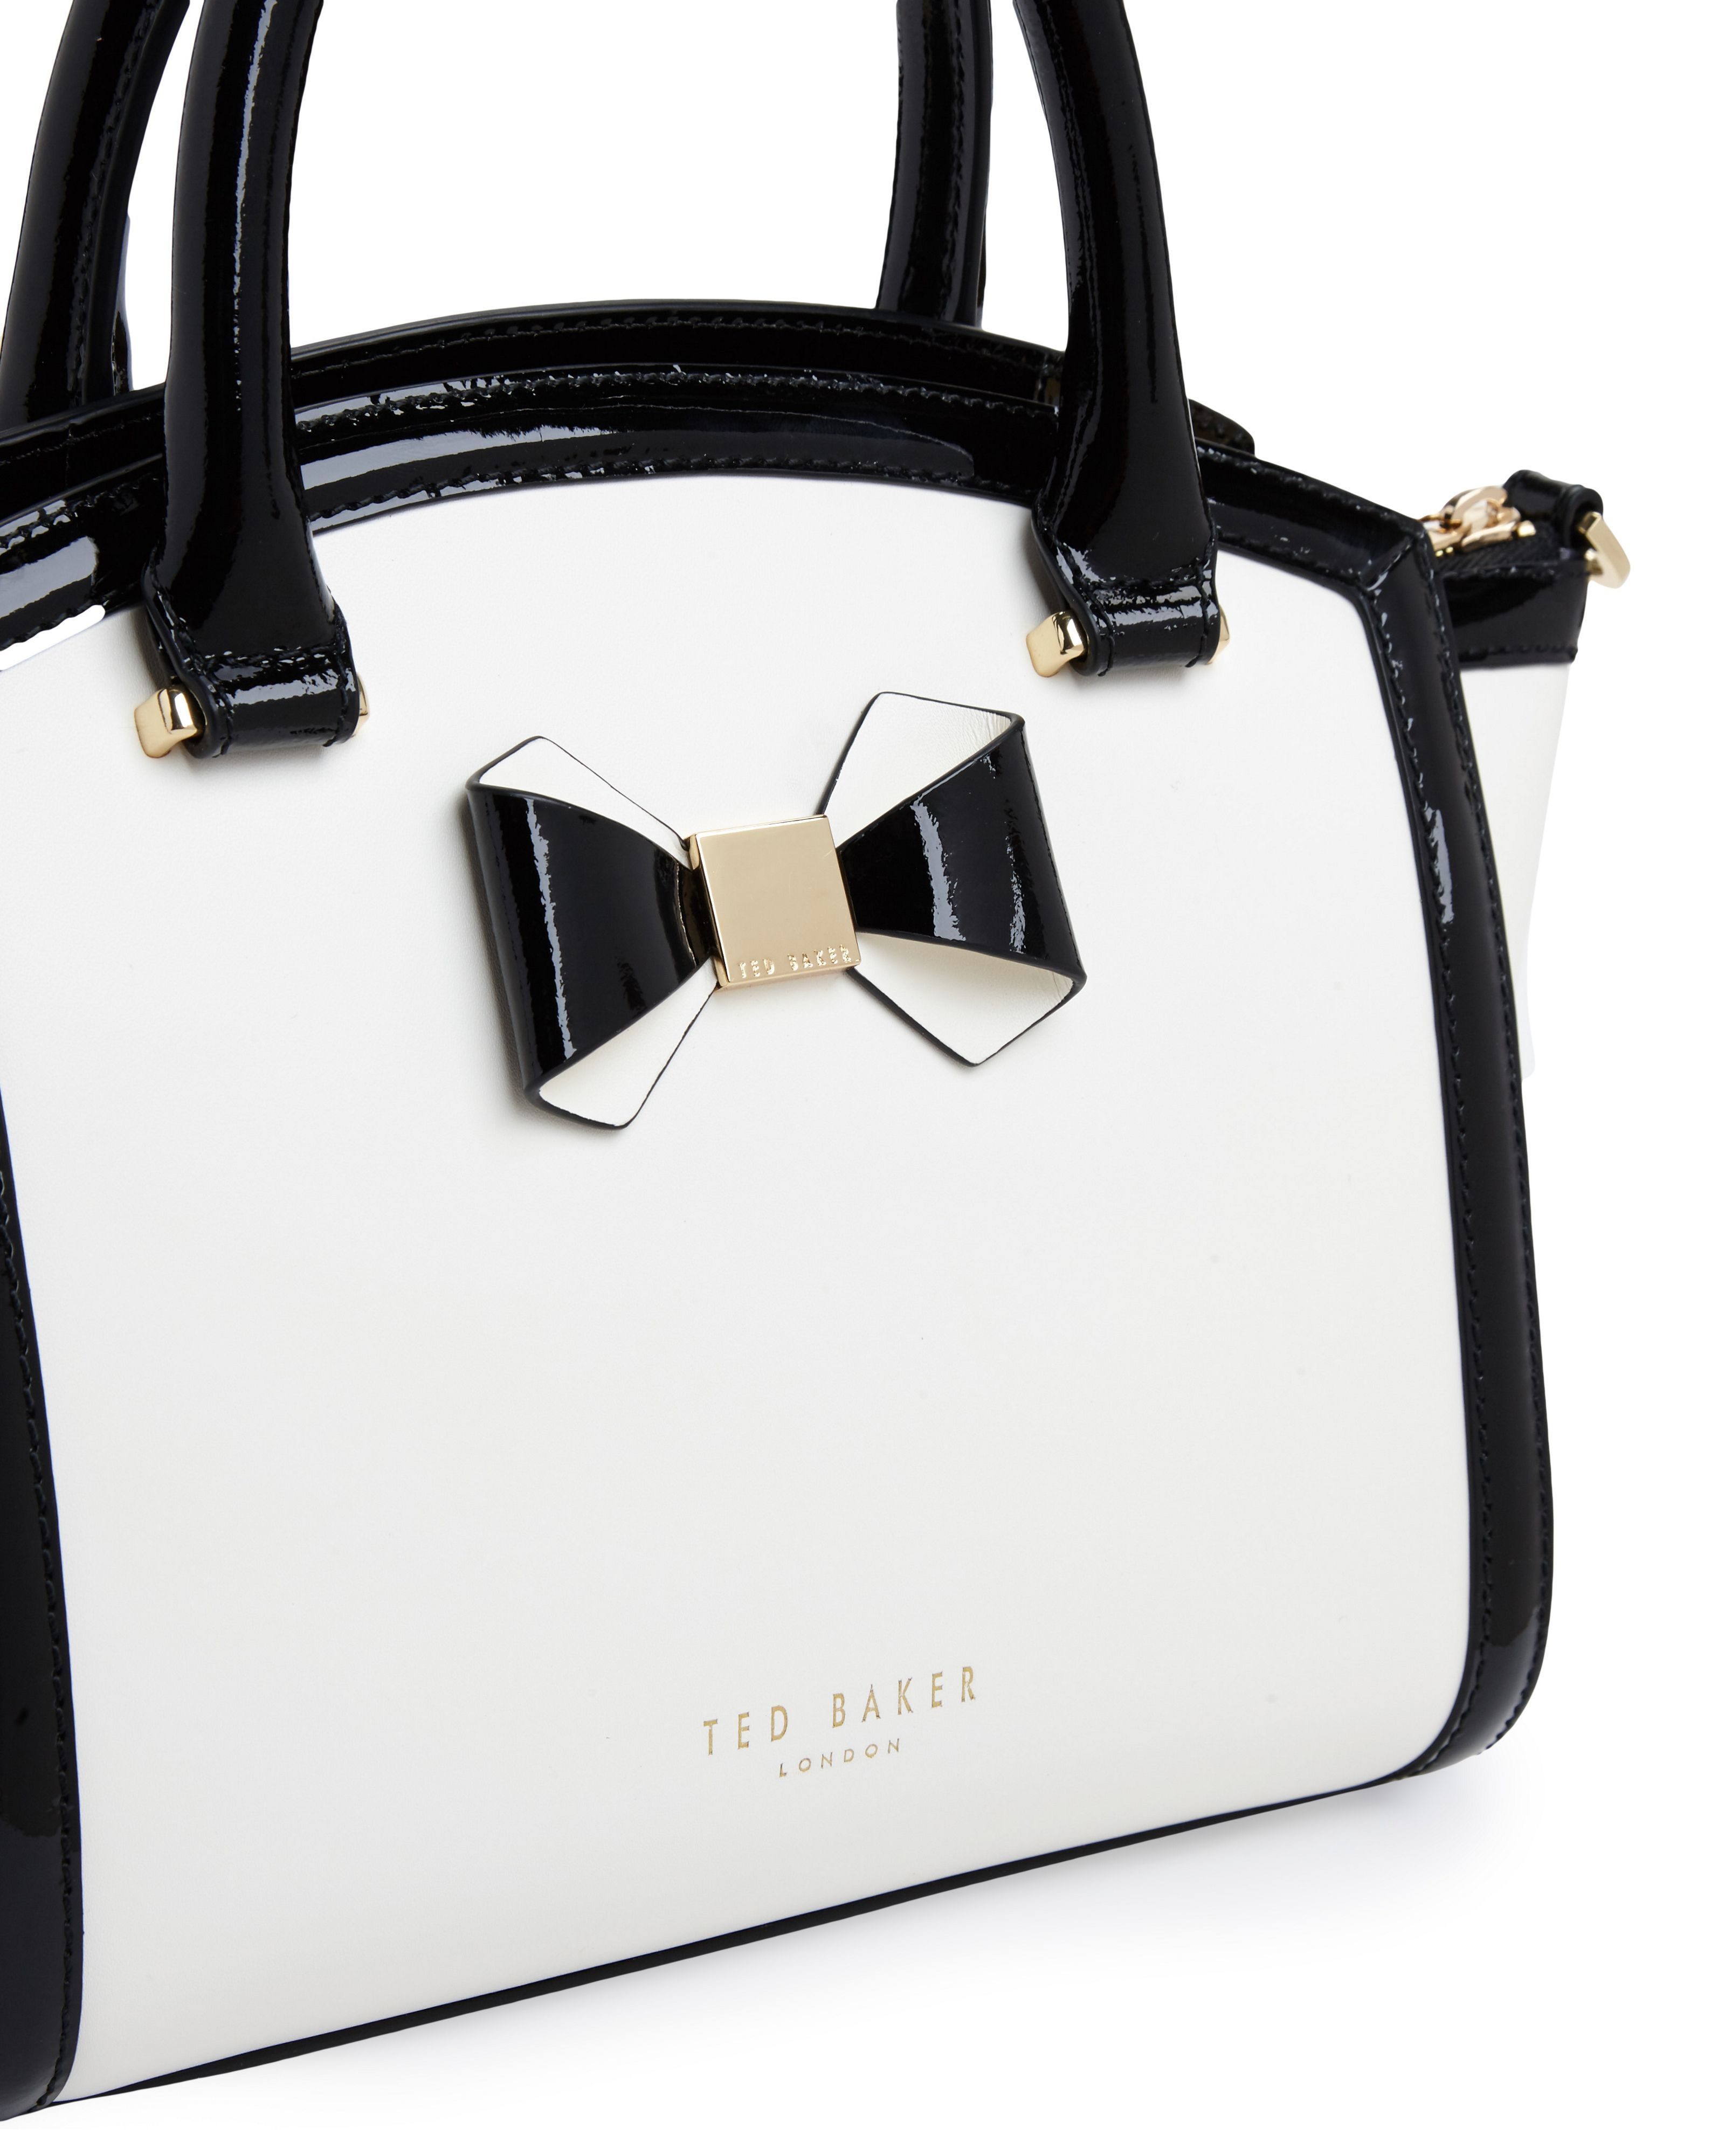 992a5b9fbb7 Buy Ted Baker Women's White Demmie Curved Bow Leather Tote Bag ...